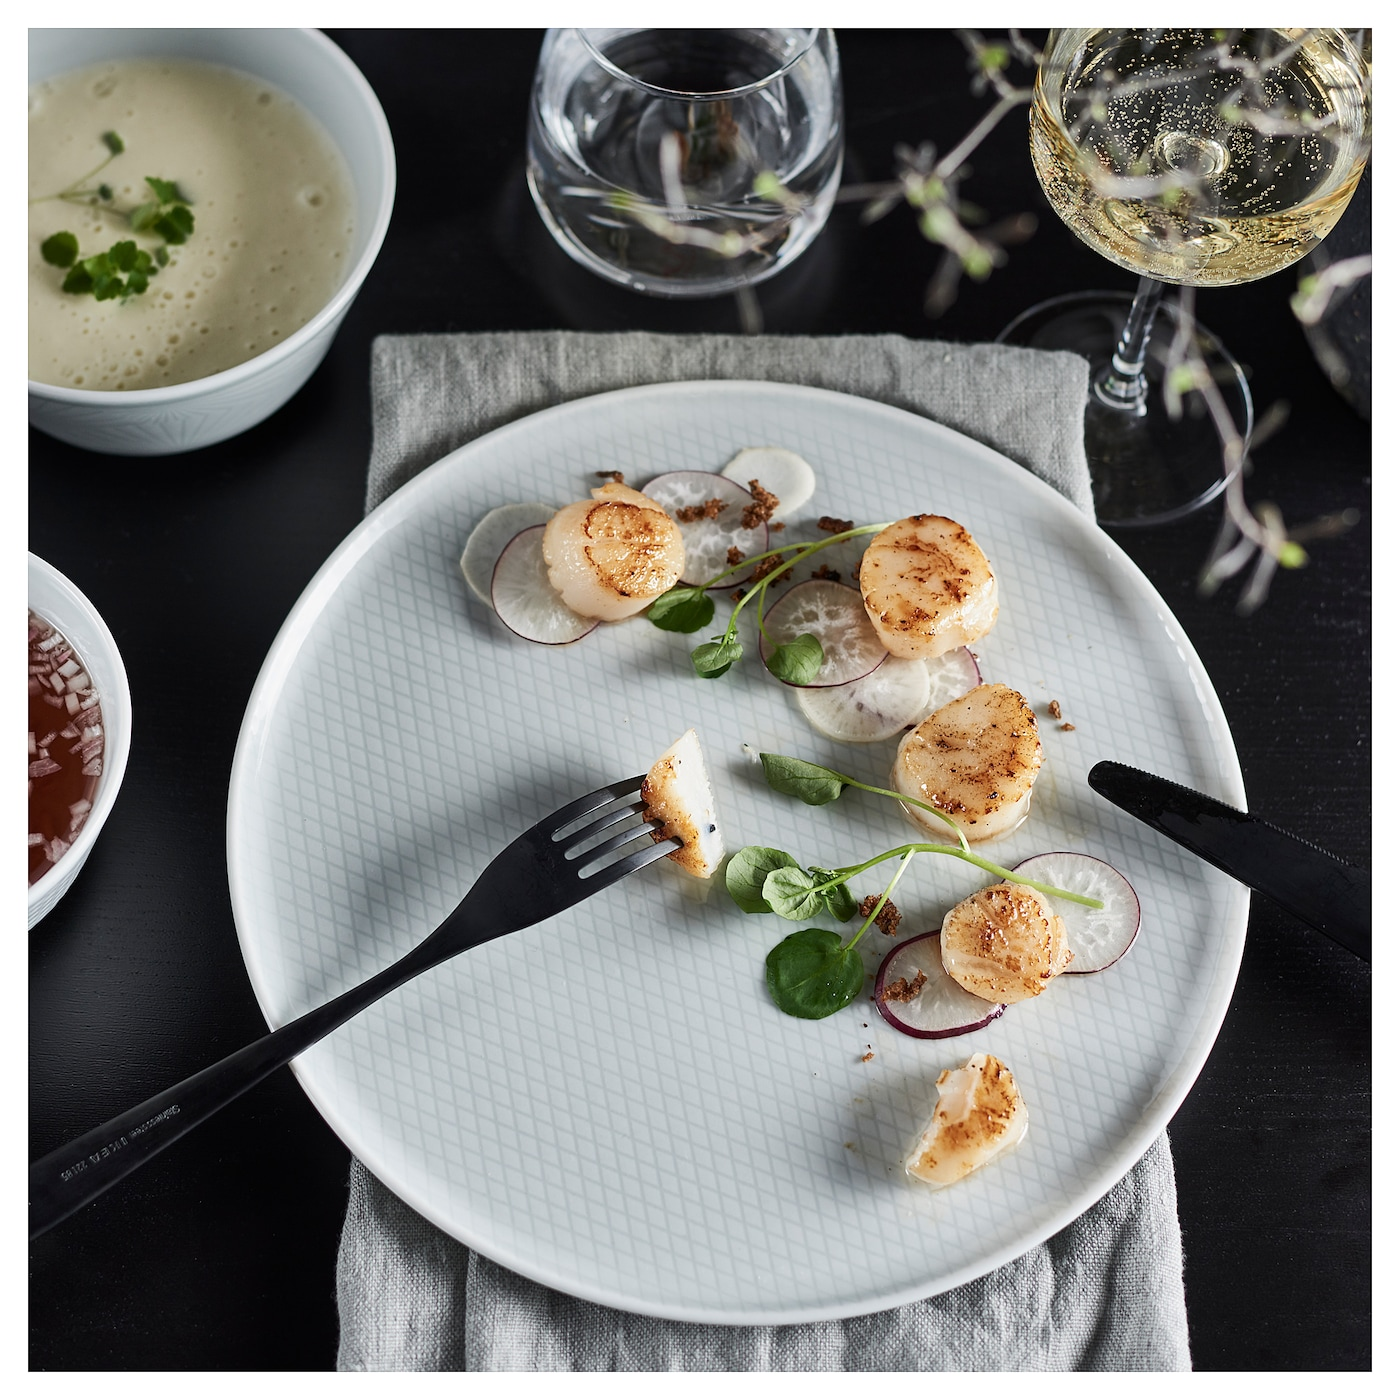 IKEA KRUSTAD plate Made of feldspar porcelain, which makes the plate impact resistant and durable.